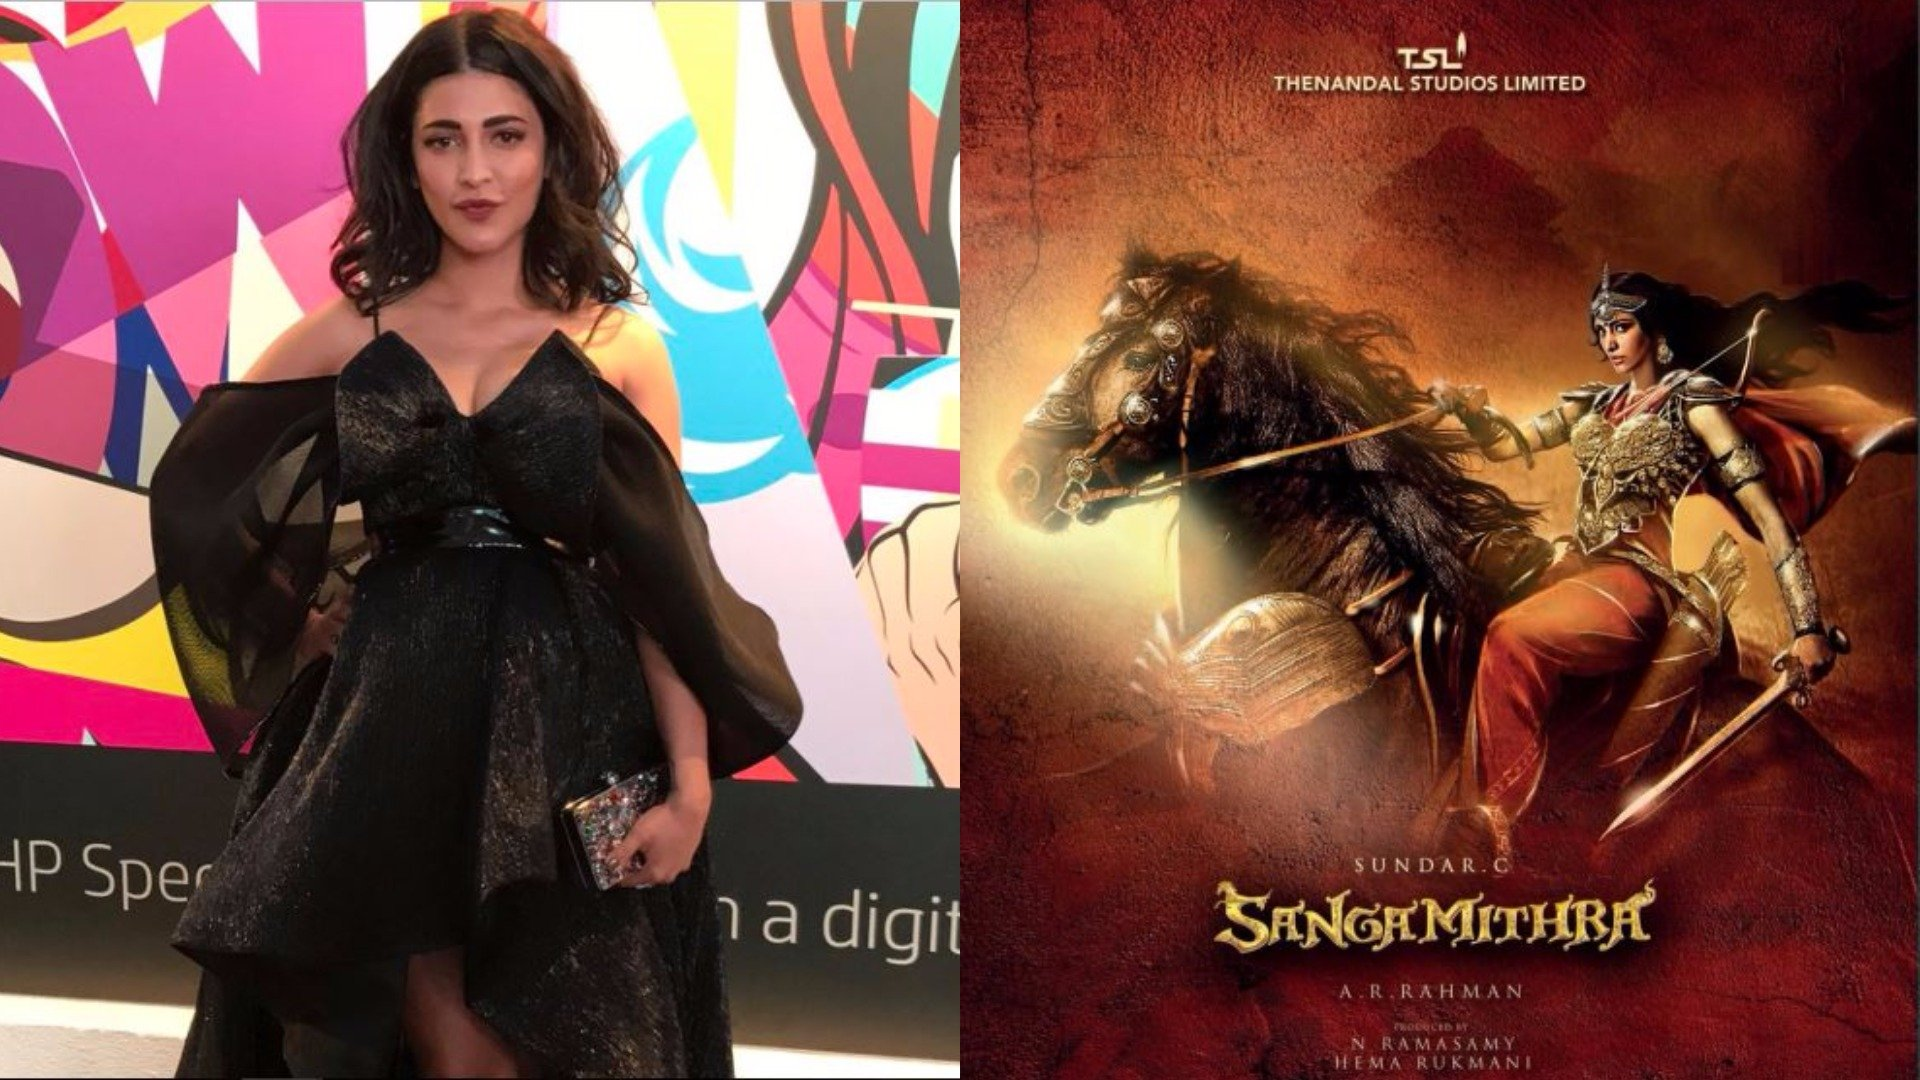 e07bdf3f594 Shruti Haasan Opts Out Of 'Sangamithra' After Unveiling The Poster ...